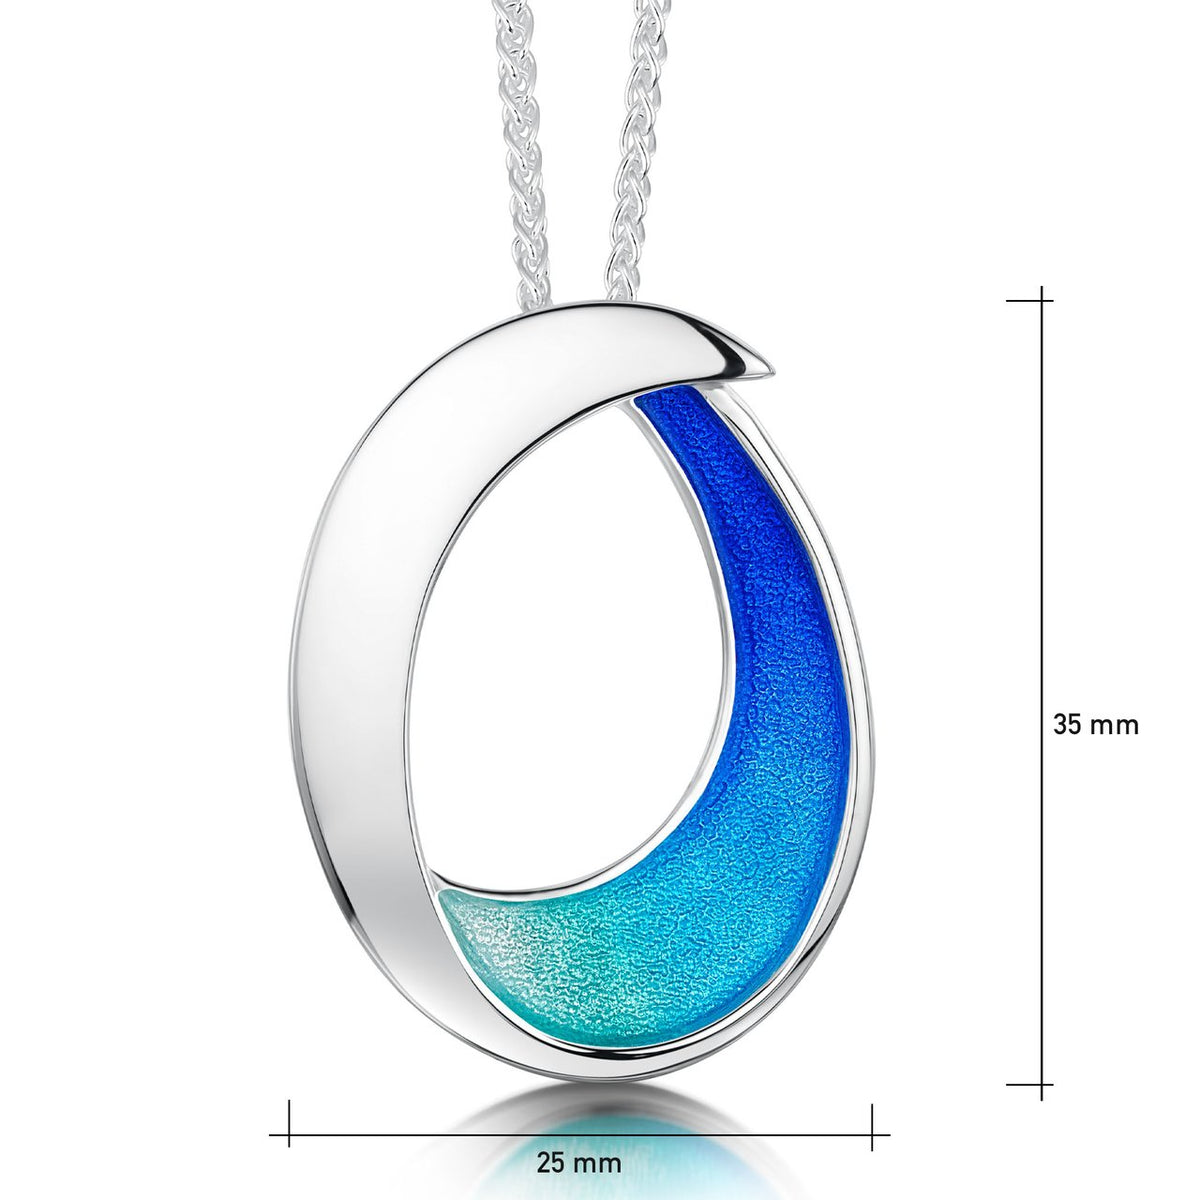 Sea & Surf Pendant by Sheila Fleet